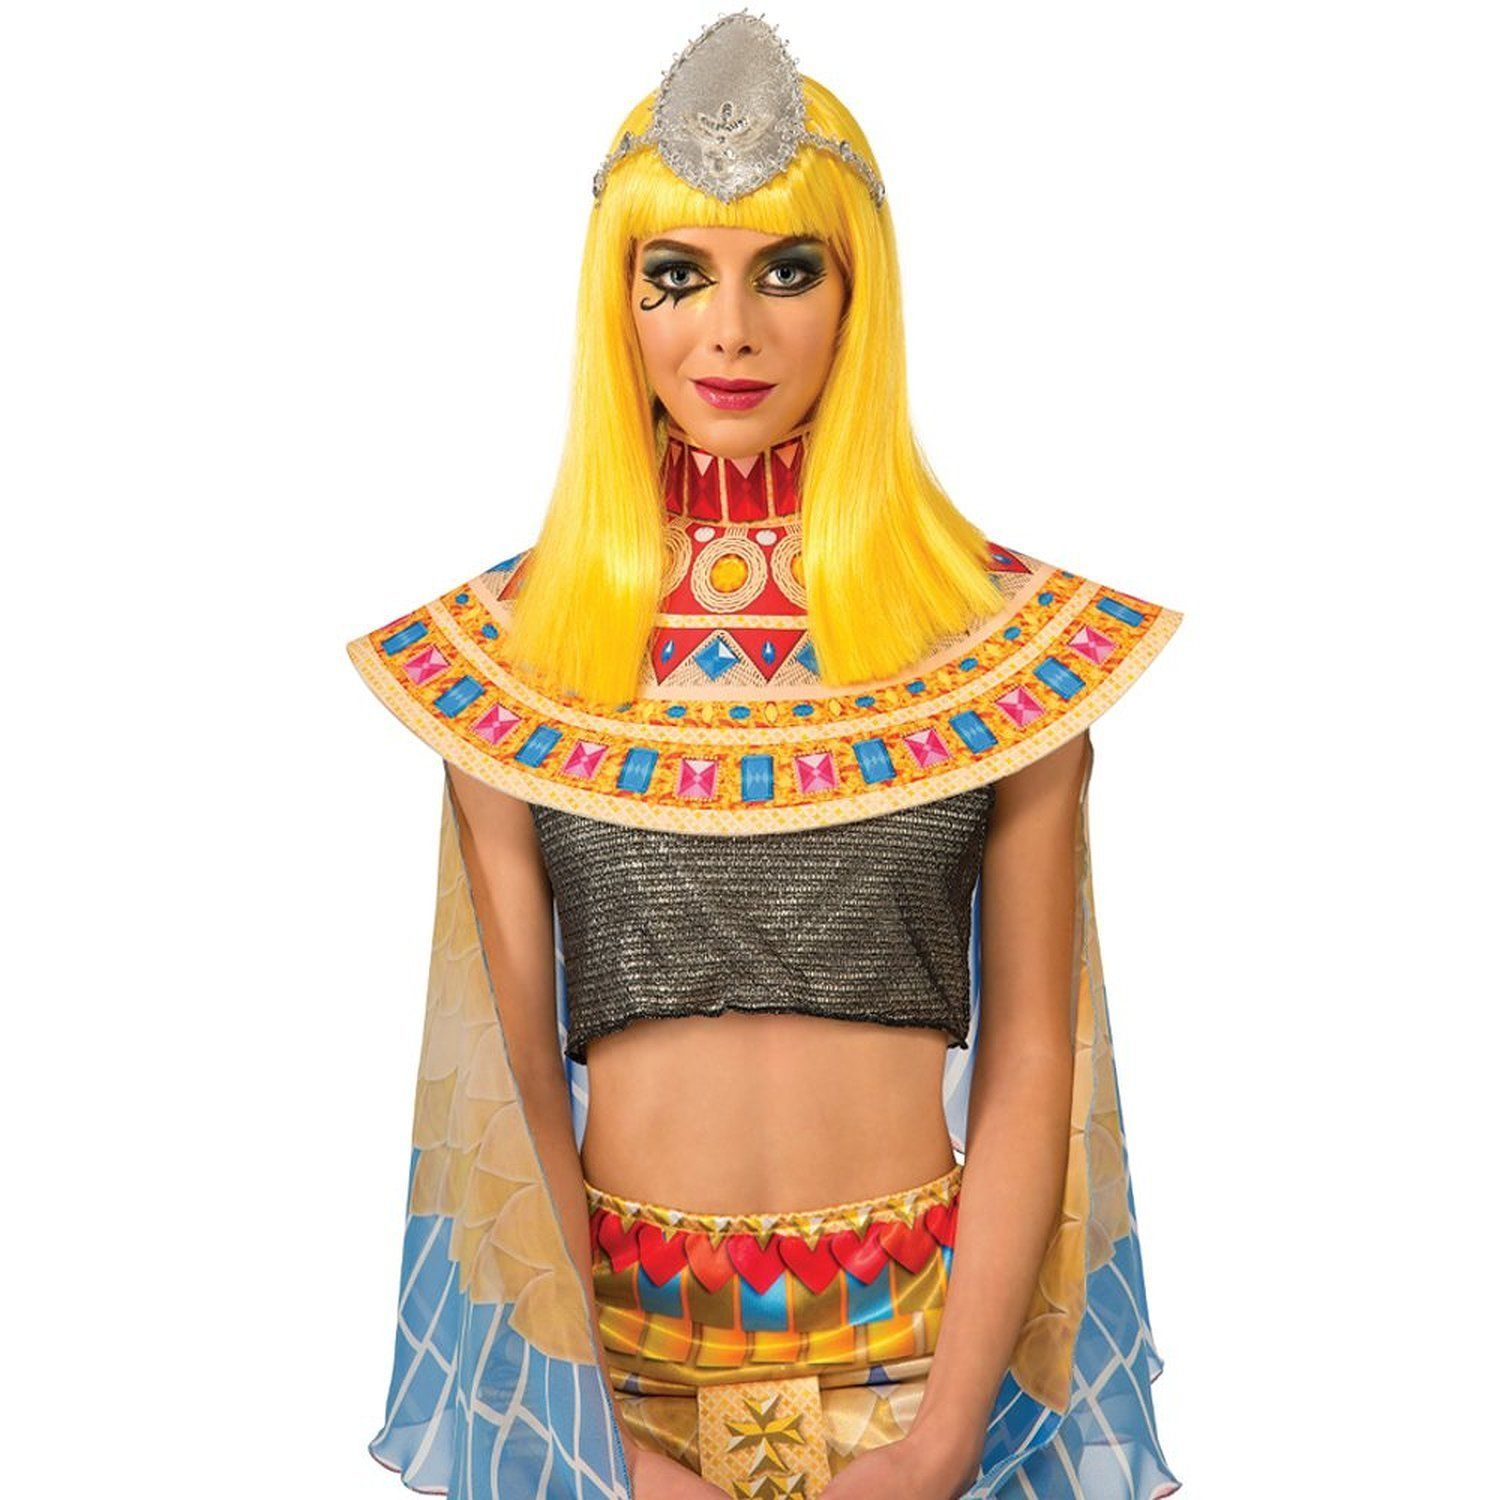 Image 0 of Rubie's Costume Katy Perry Patra Dark Horse Adult Wig, Yellow, One Size